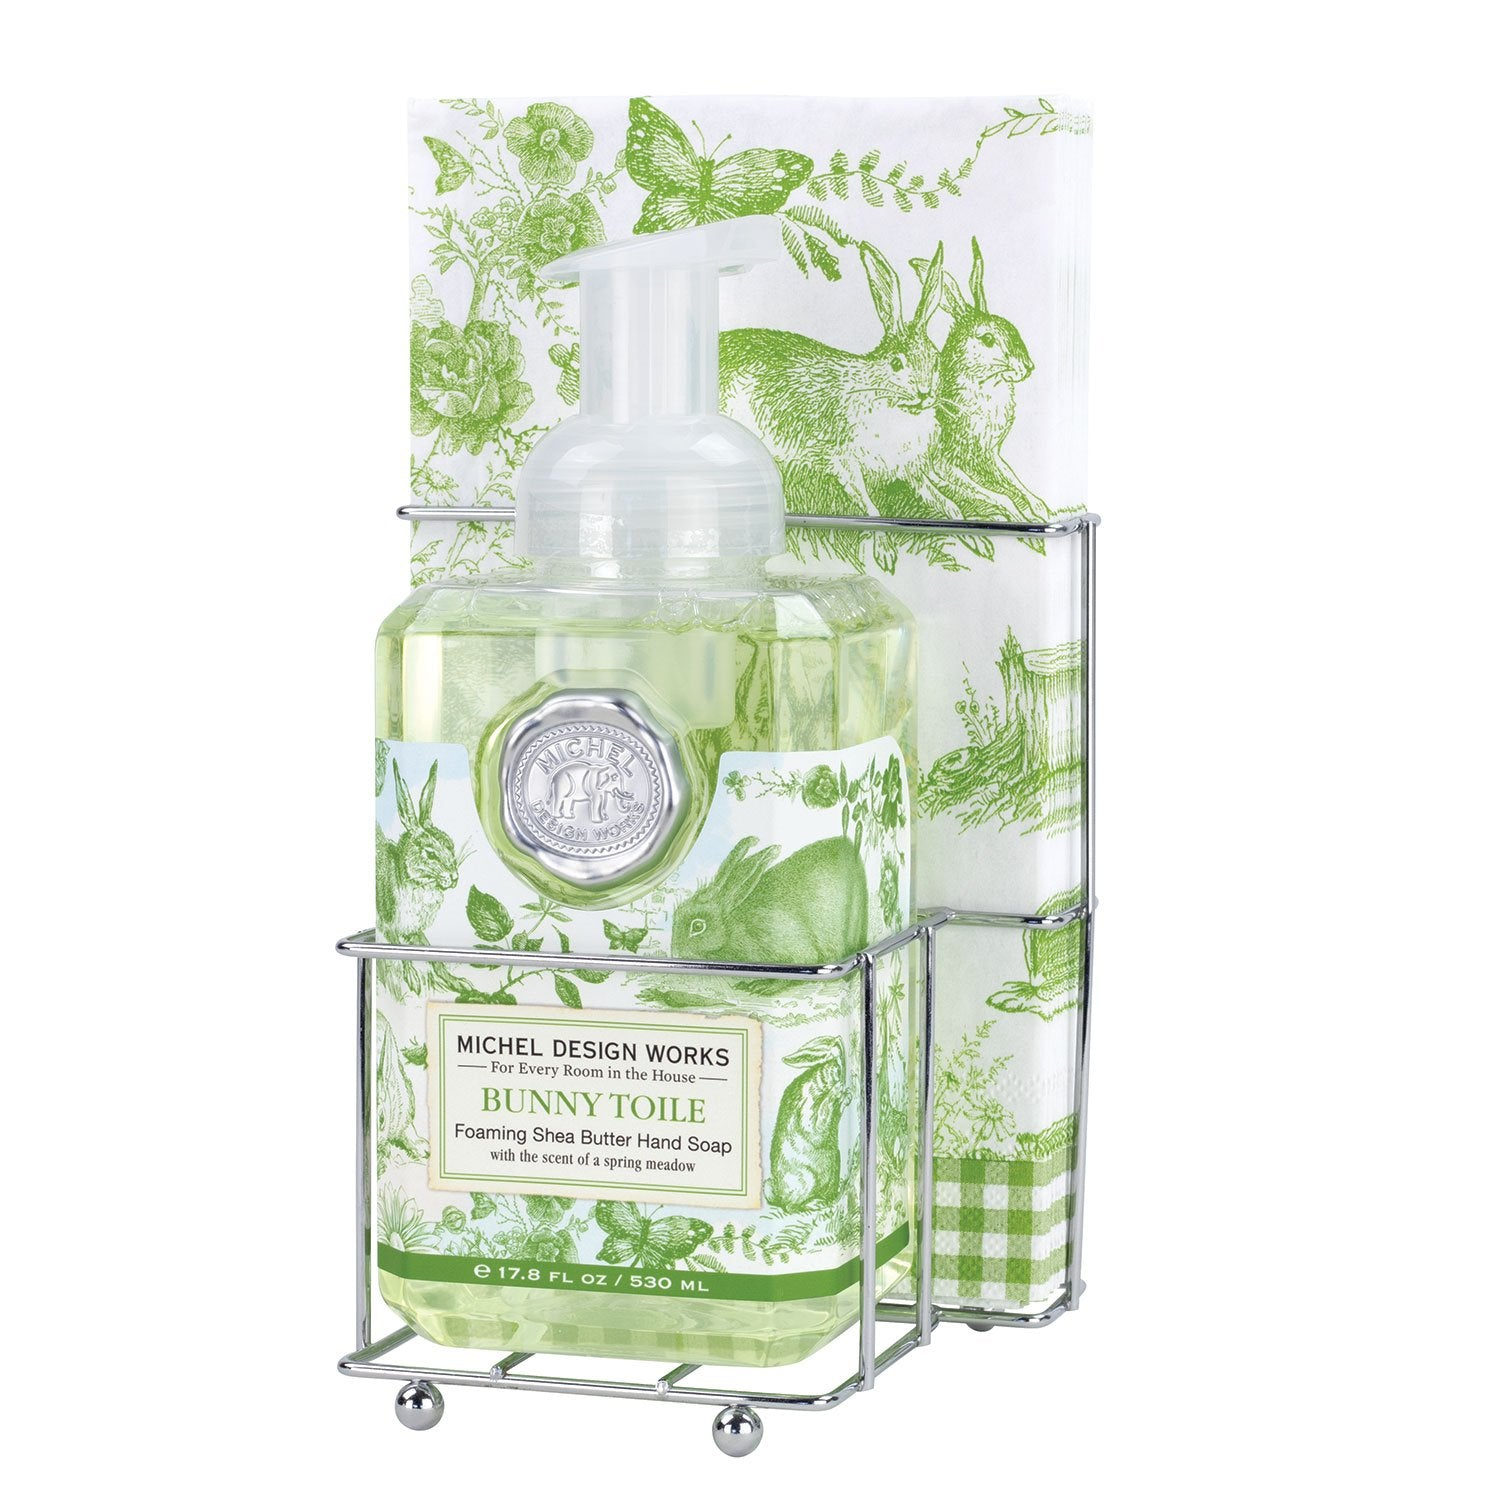 Bunny Toile Foaming Hand Soap Napkin Set